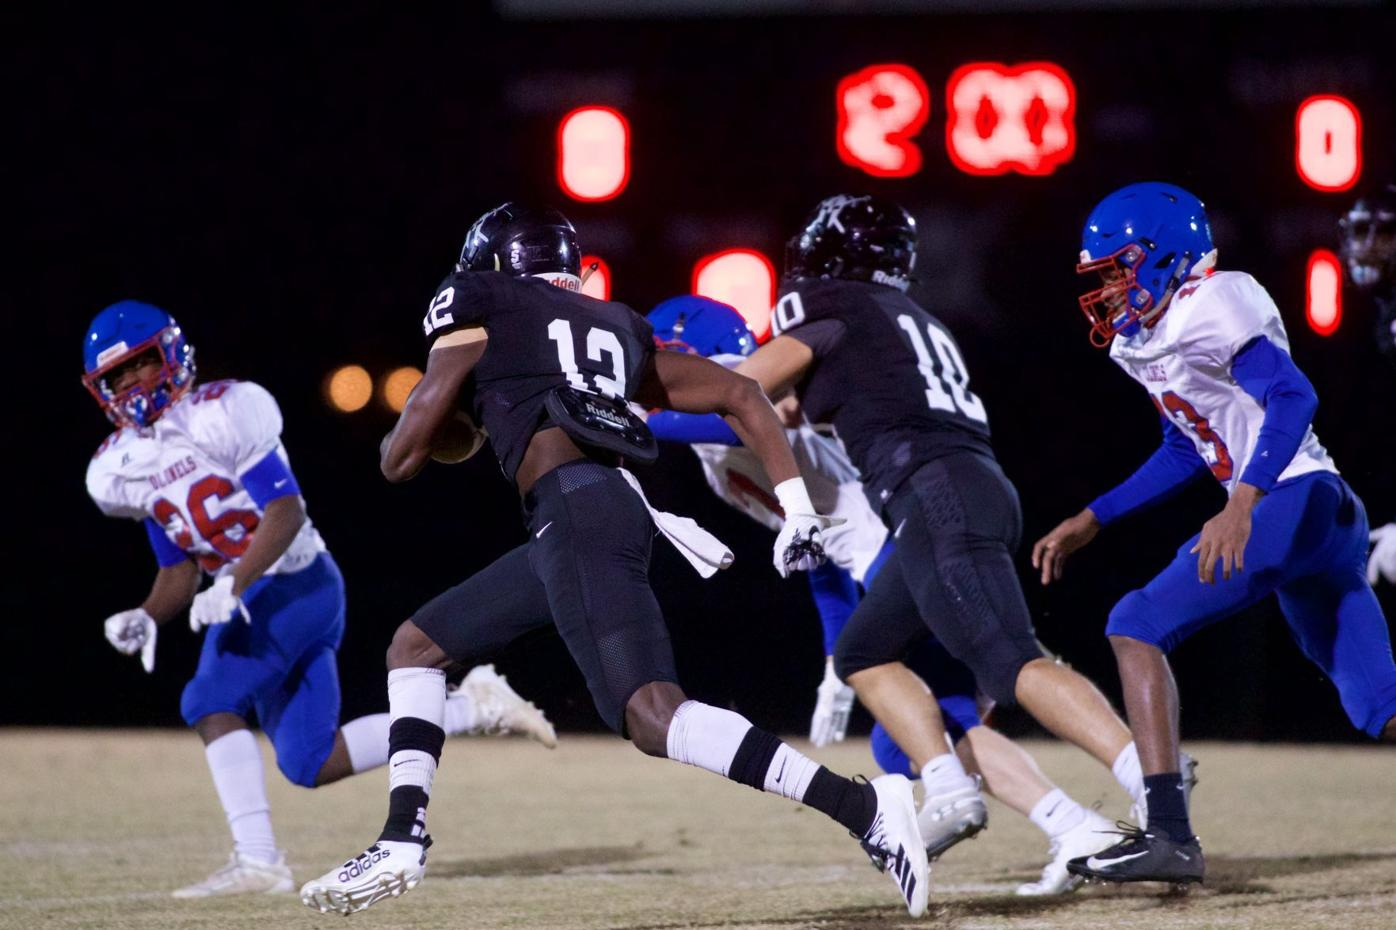 201120_football_Christian County @ South Warren_5a round01_outbound 1.jpg